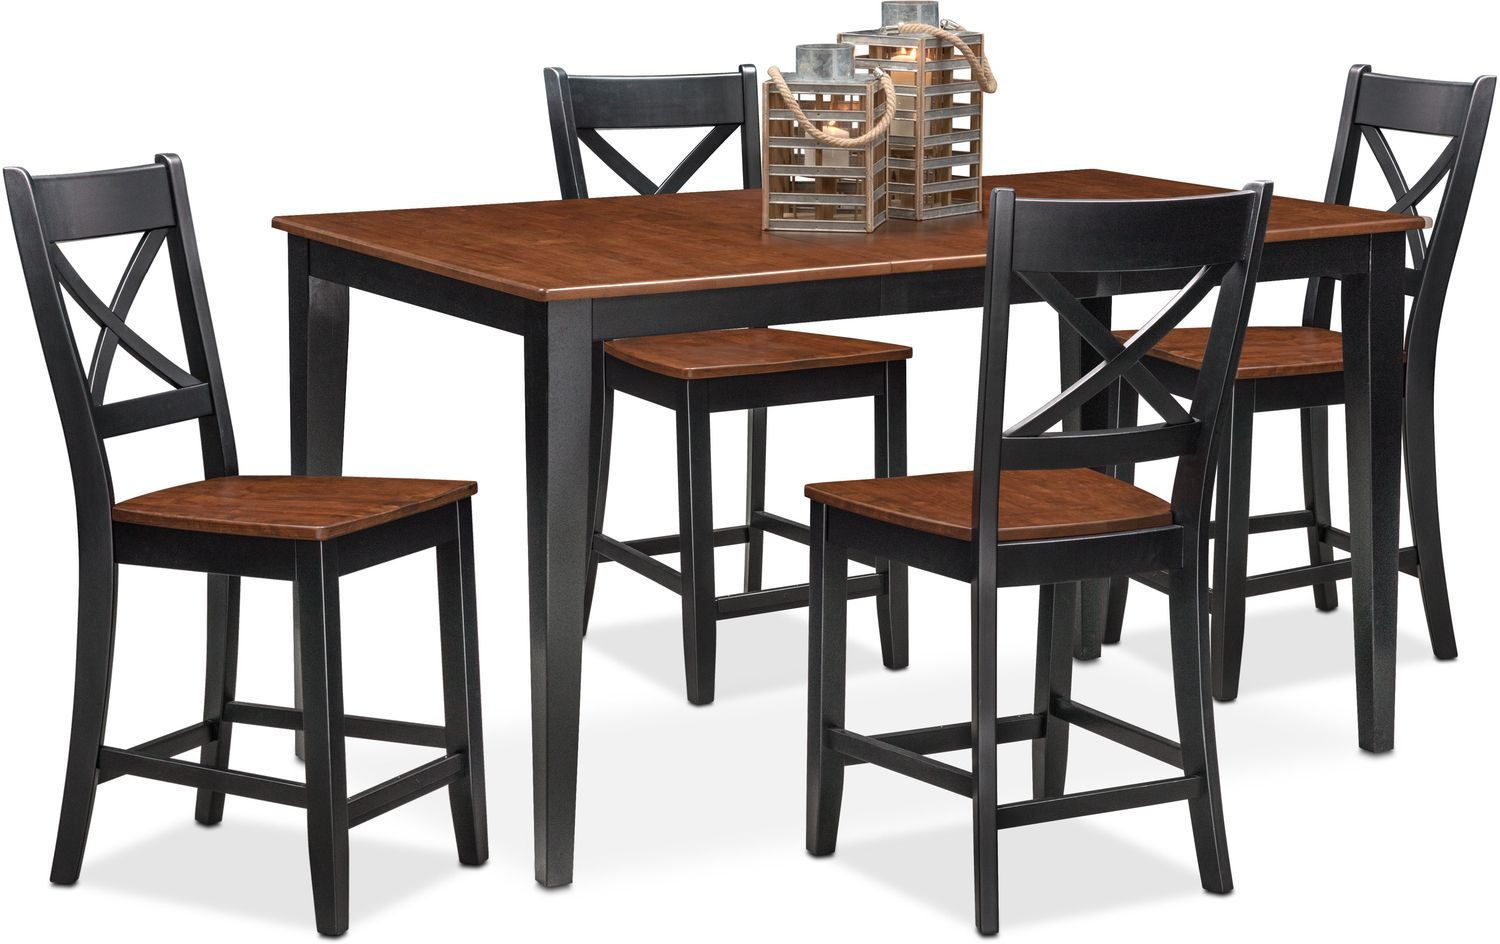 Nantucket Counter-Height Table and 4 Side Chairs - Black and ...